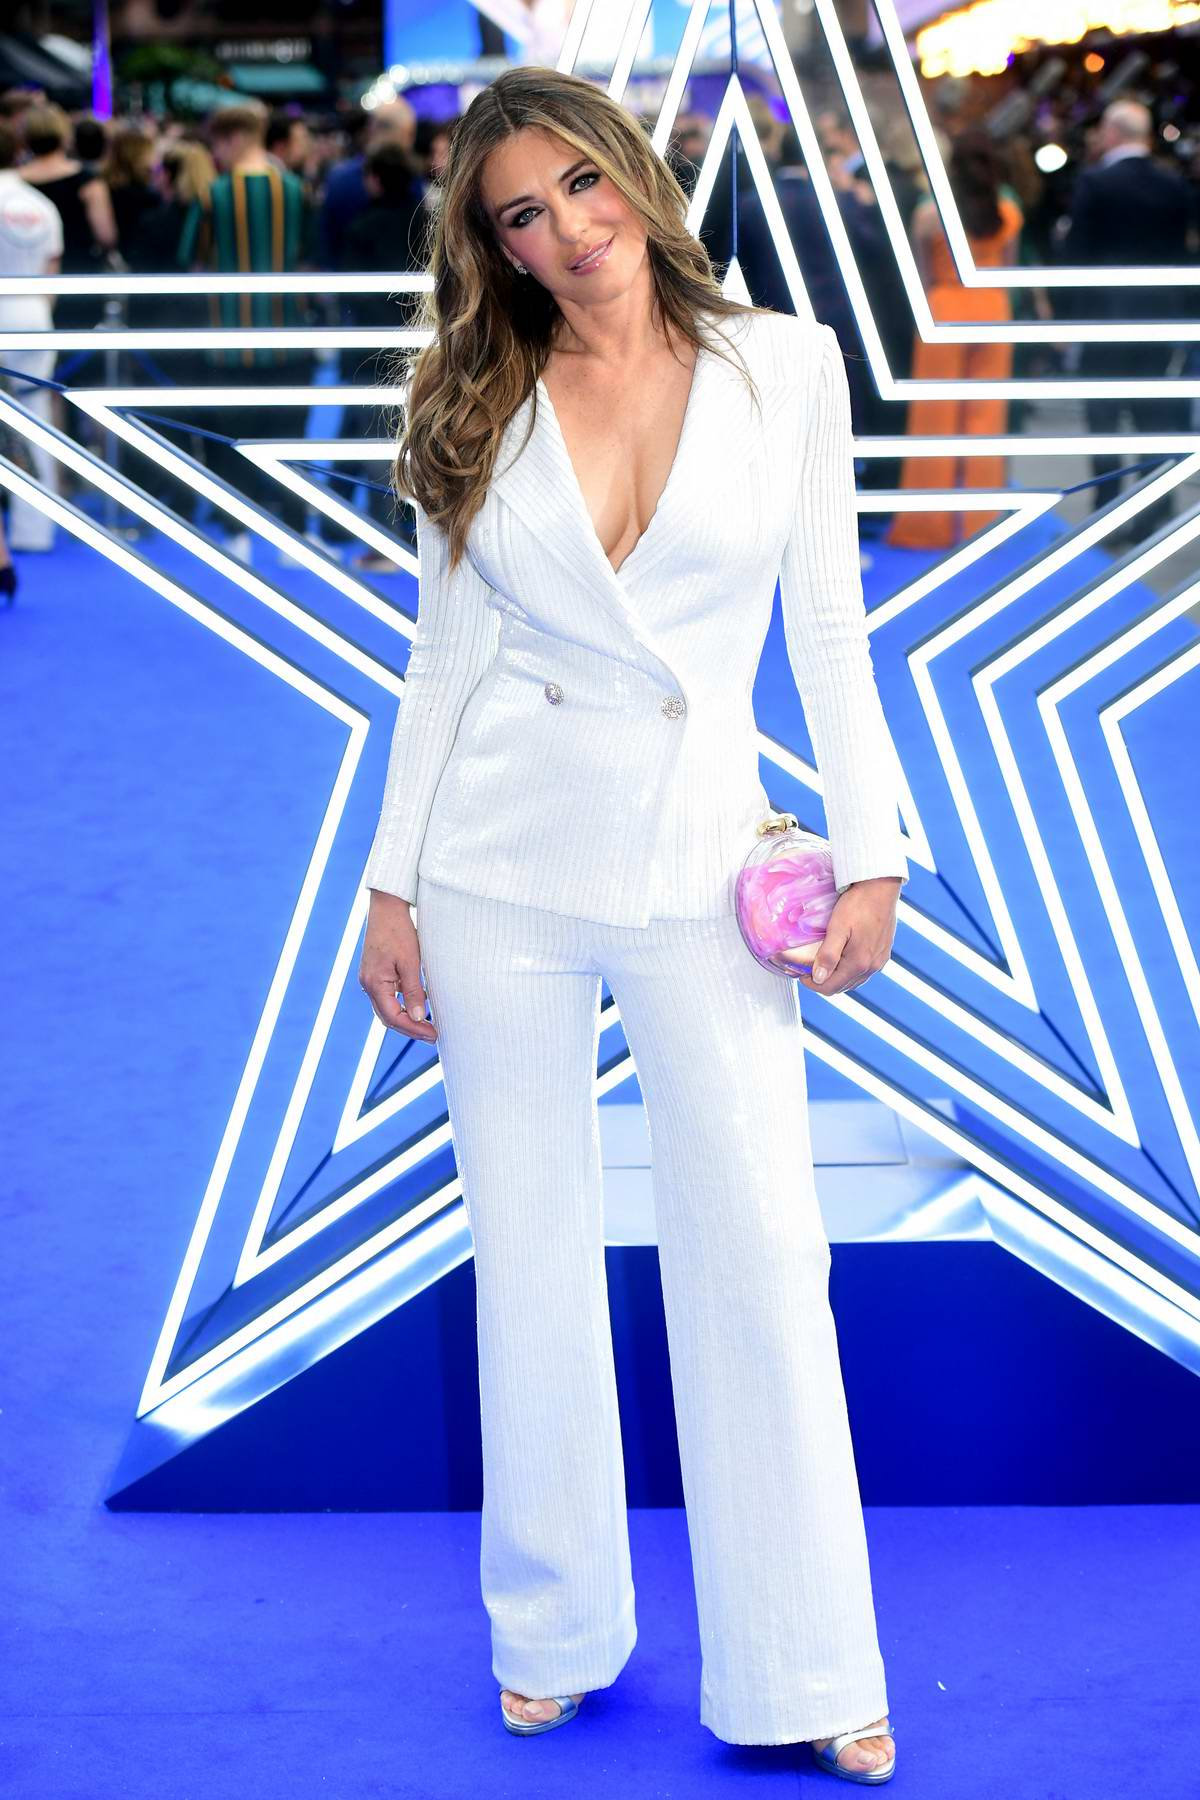 Elizabeth Hurley attends the UK Premiere of Rocketman at the Odeon Luxe in London, UK